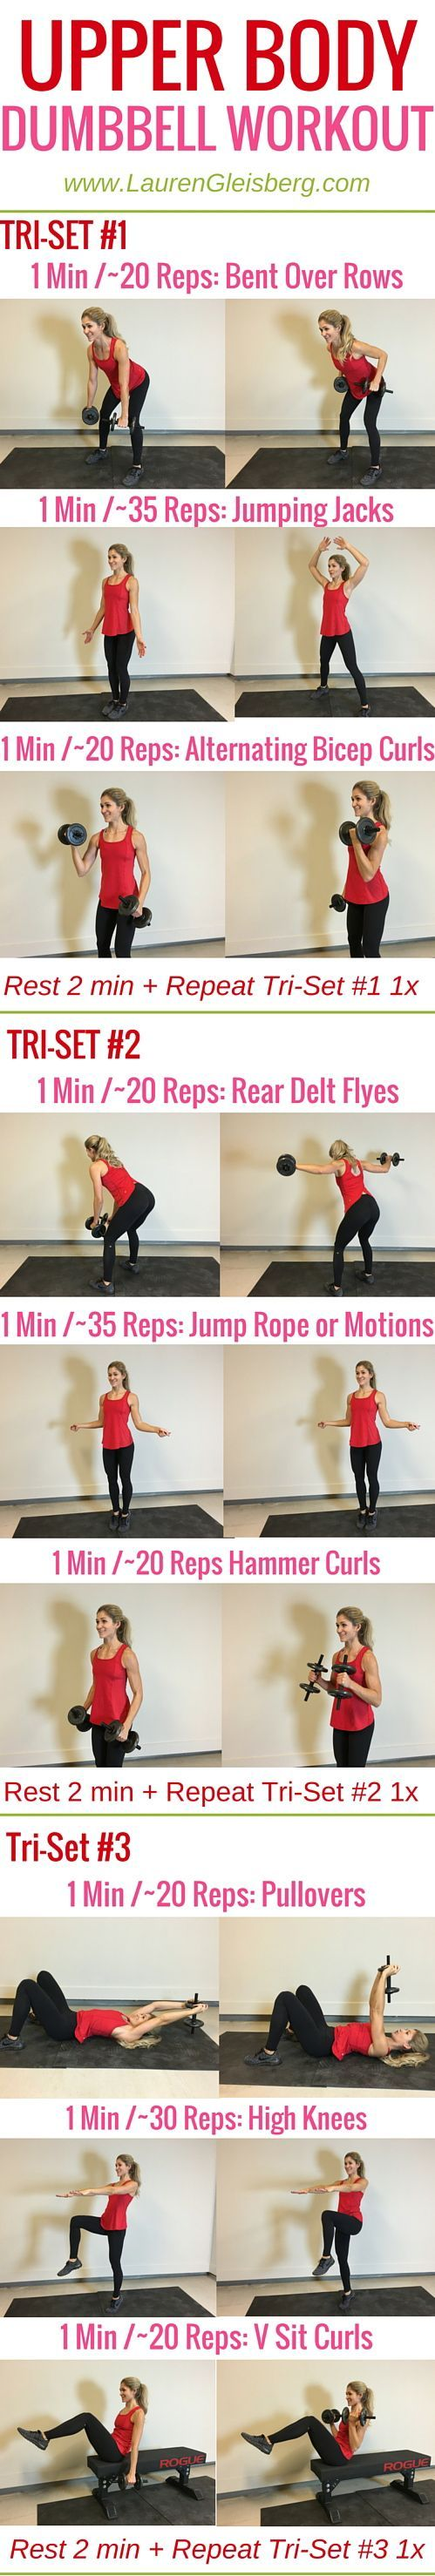 Week 4 Day 5 | Home Version | Upper Body Dumbbell Workout | #LGFitmas Lauren Gleisberg: